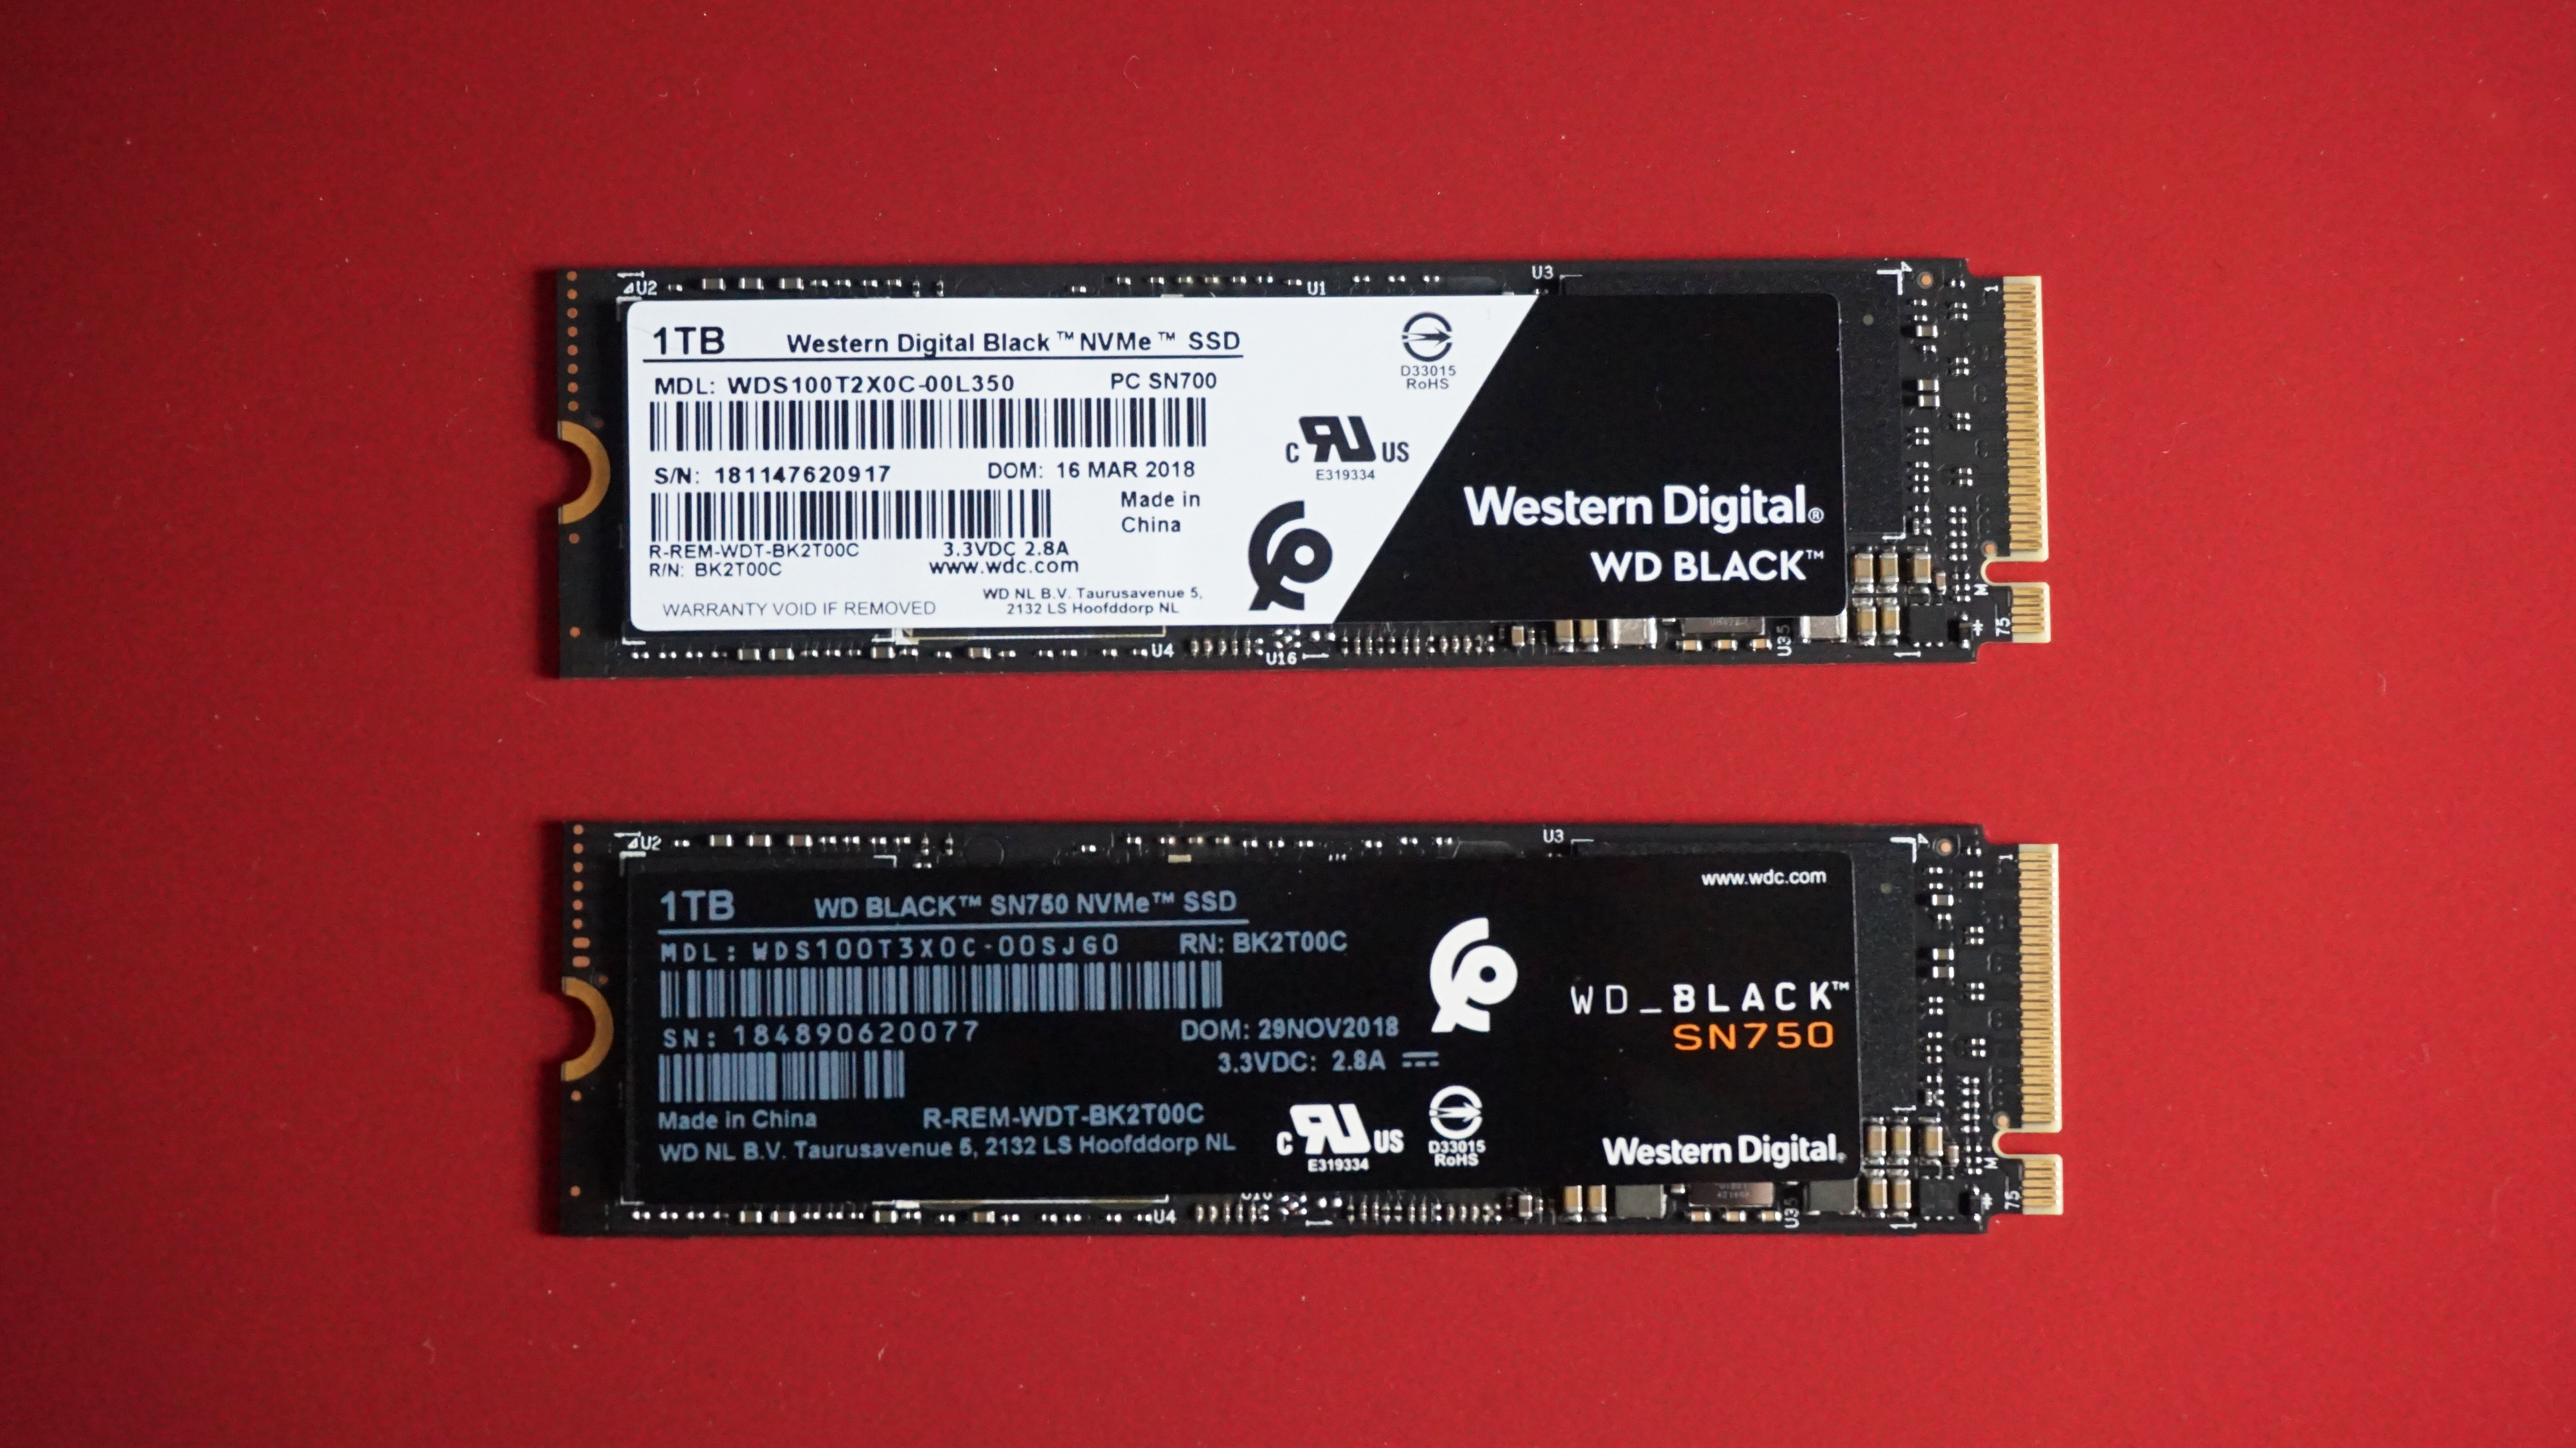 WD Black SN750 review: So close to the Samsung 970 Evo, yet so far